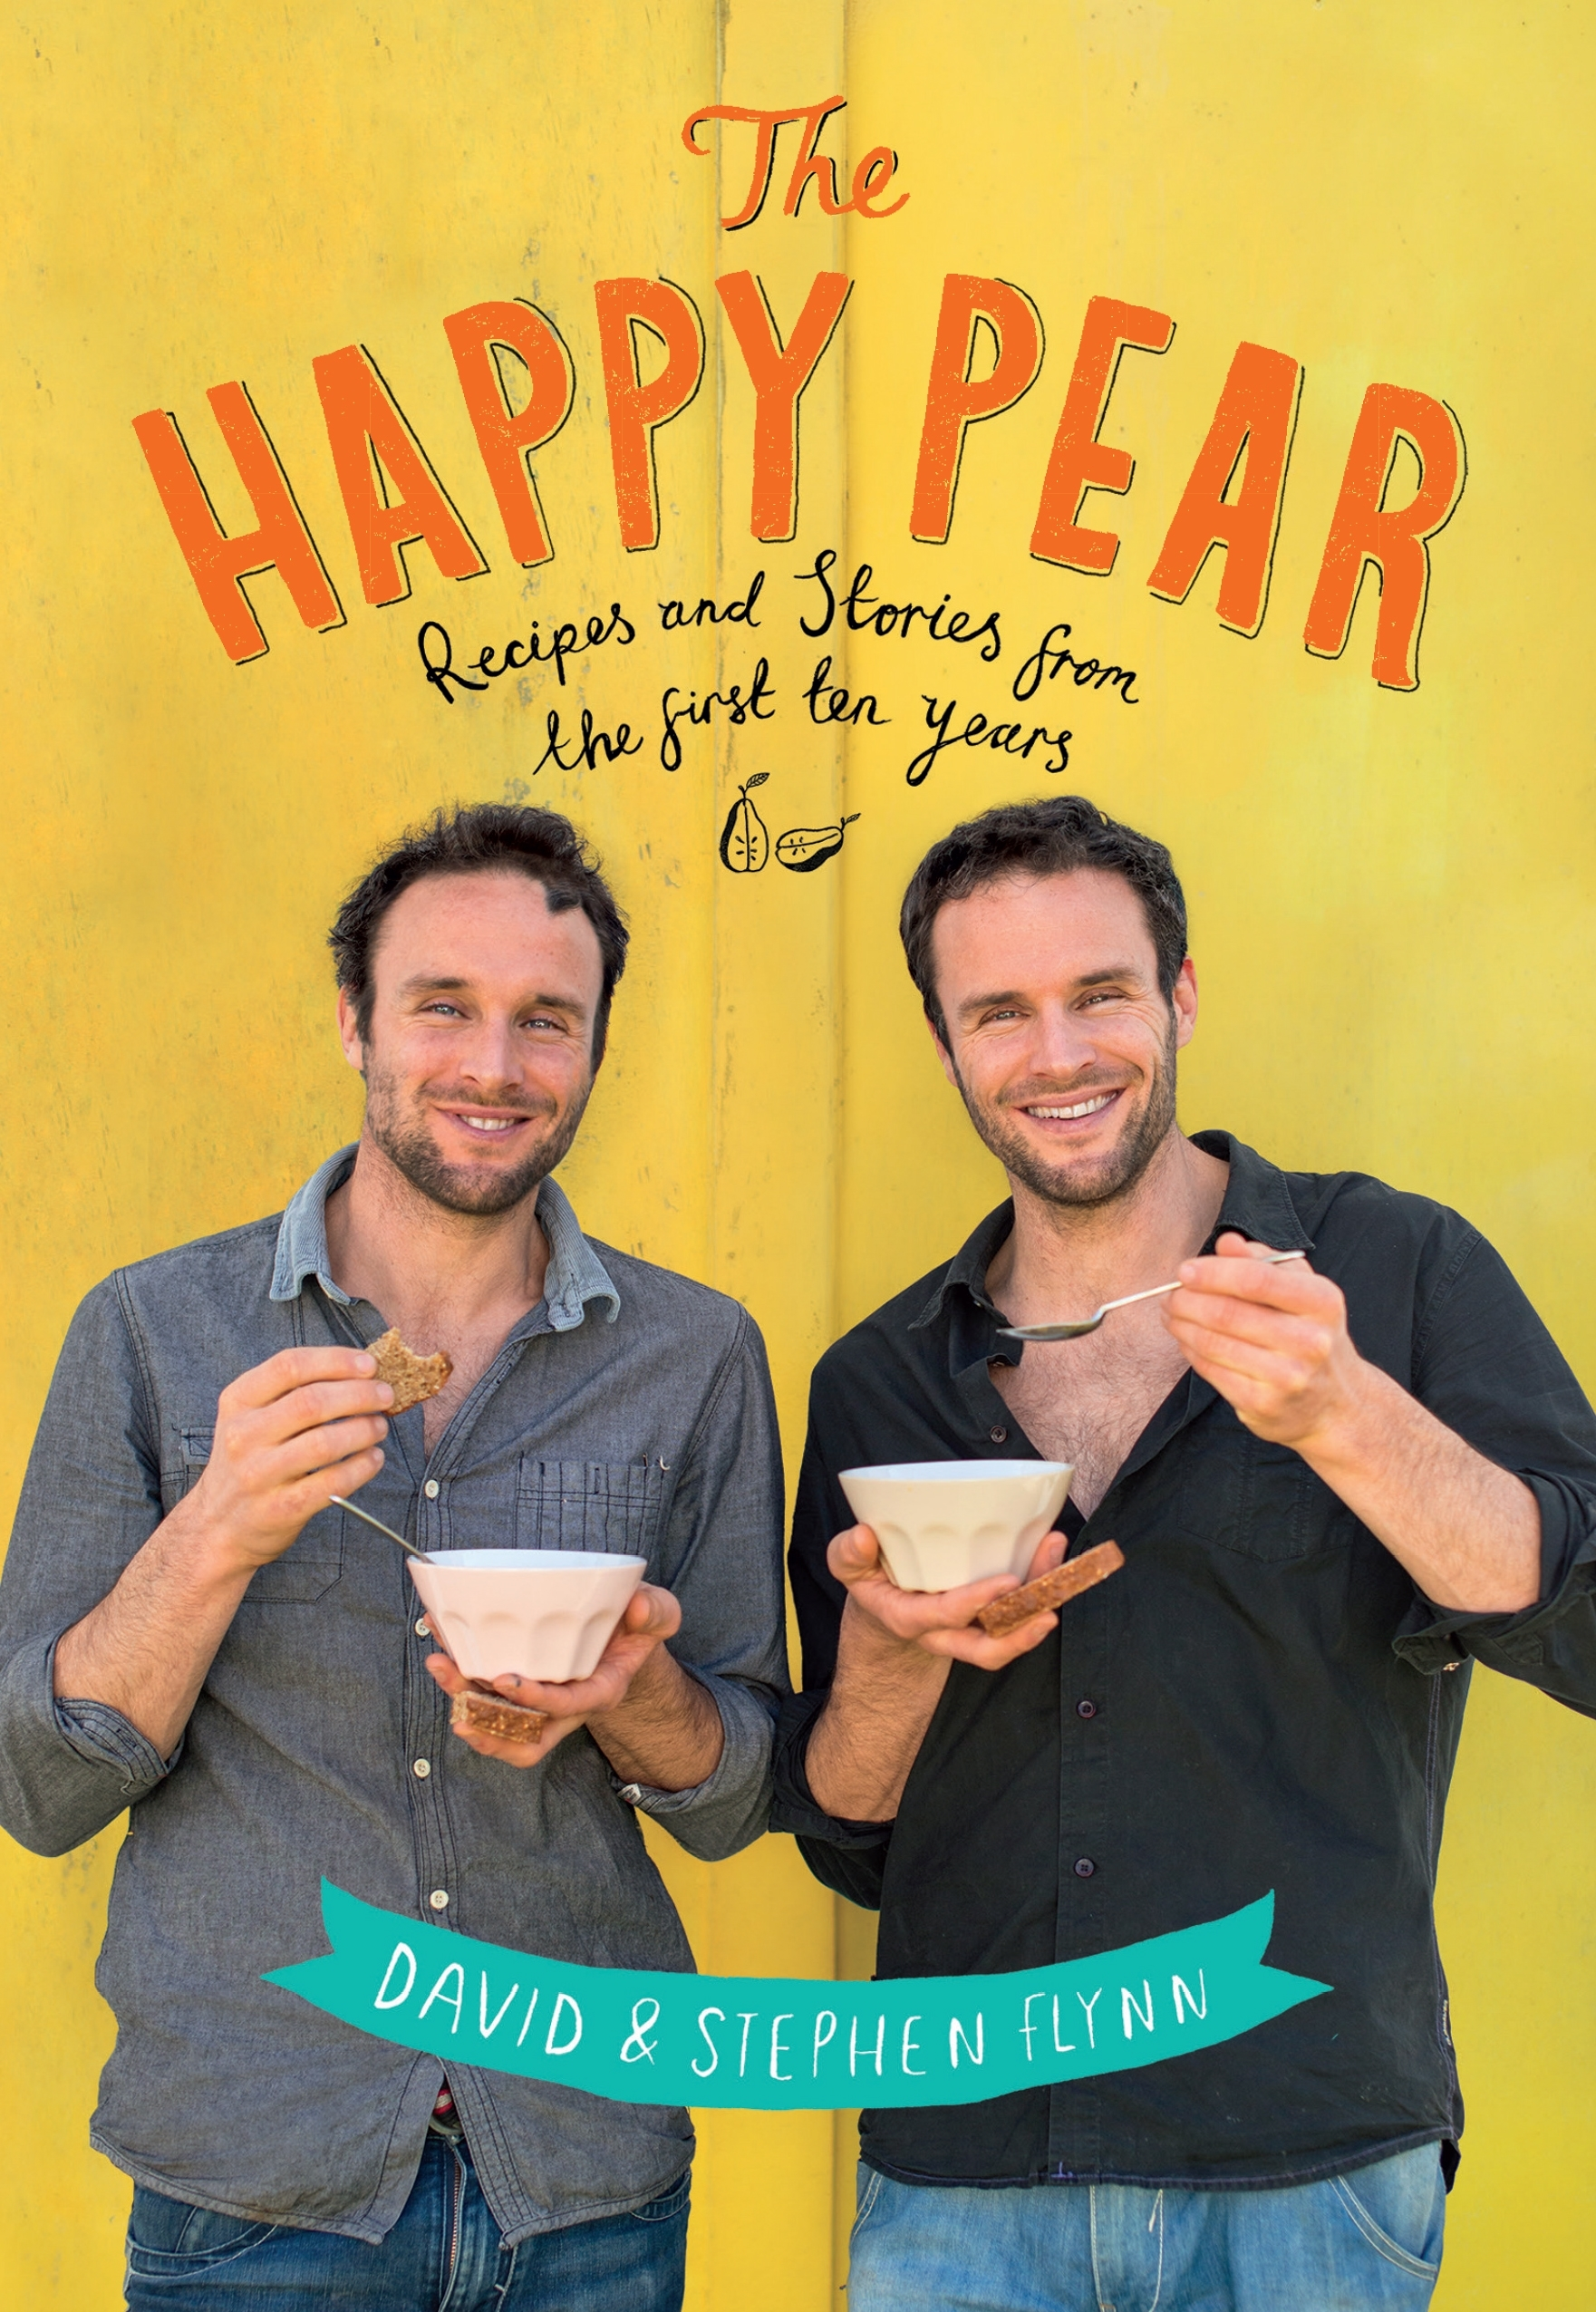 The Happy Pear Recipes And Stories From The First Ten Years By David Flynn Penguin Books New Zealand